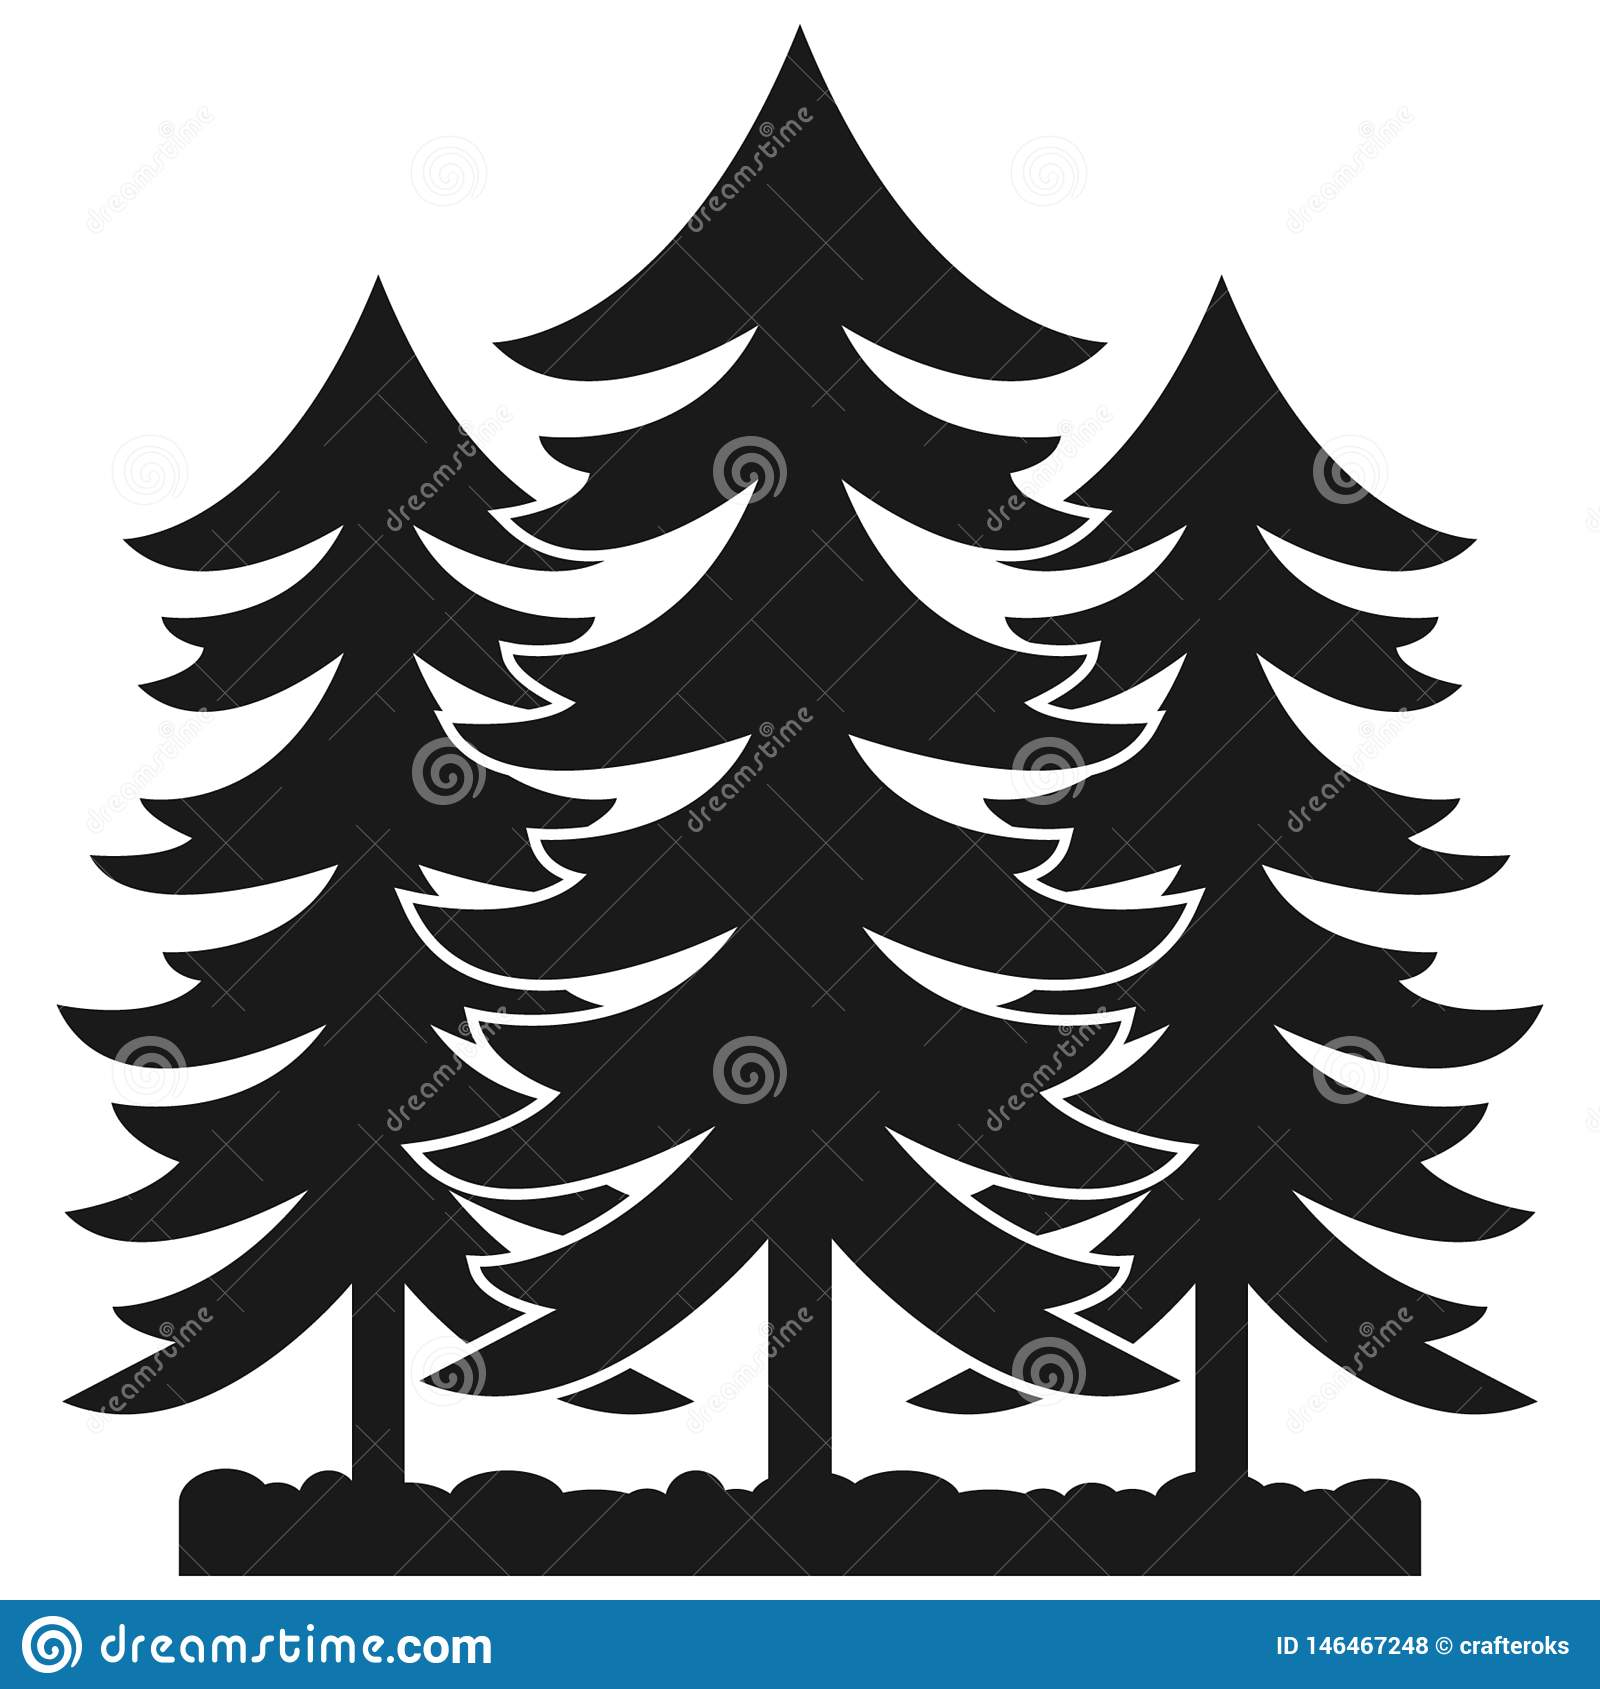 Forest Vector EpsHand Drawn, Crafteroks, Svg, Free, Free Svg File.